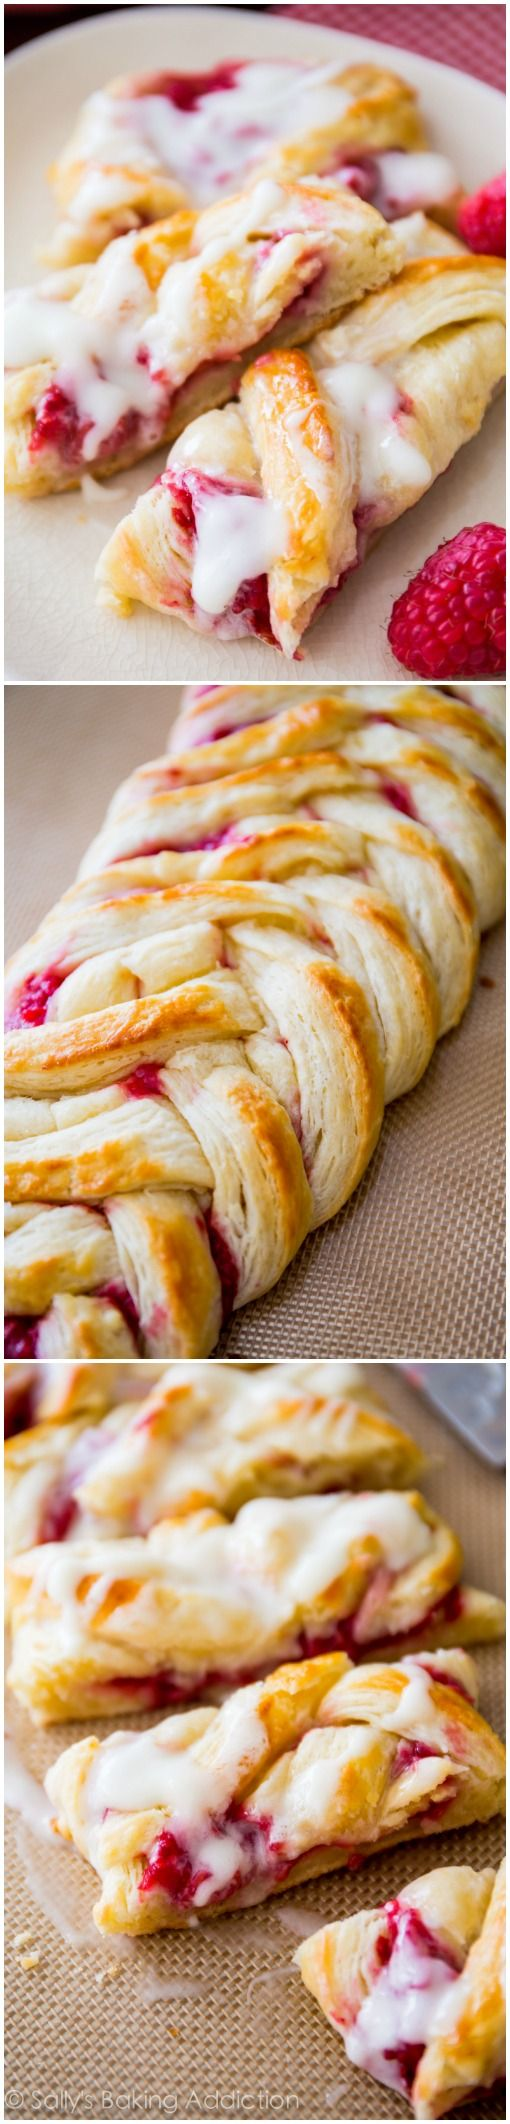 1000 ideas about danish pastries on pinterest danishes for How to make healthy desserts from scratch